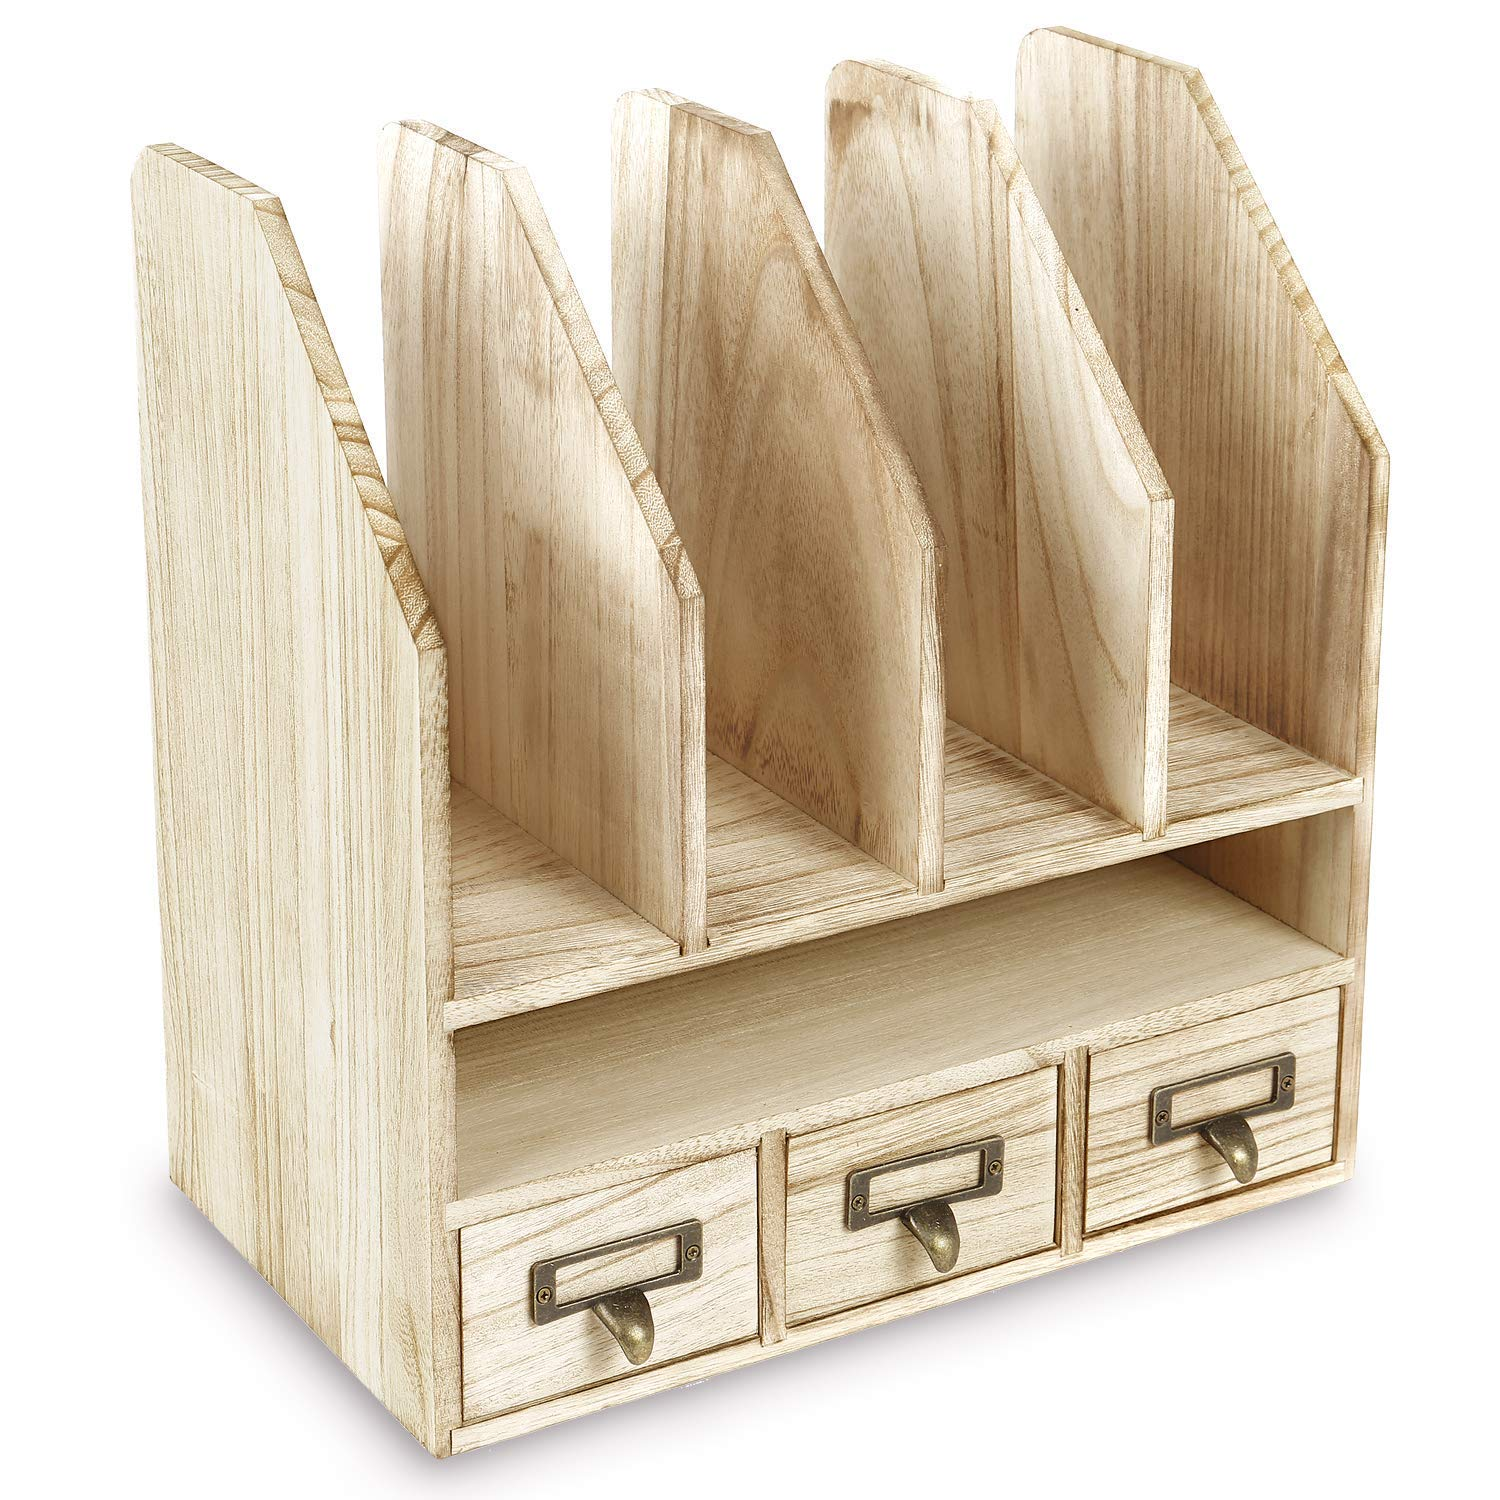 Wooden Desk Organizer File/Mail Sorter